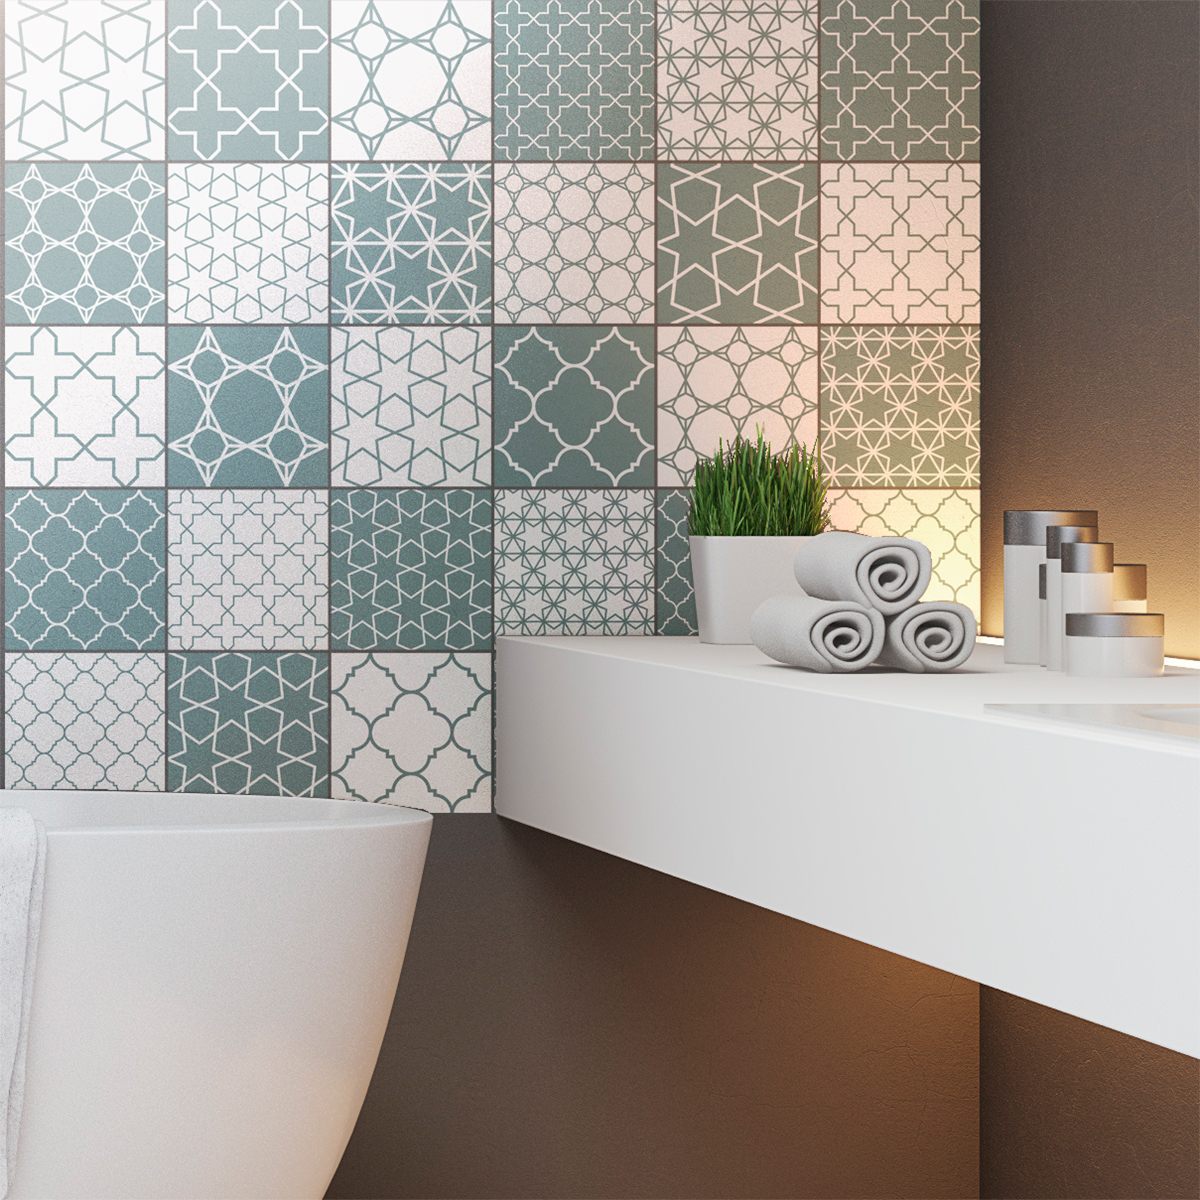 30 stickers carreaux de ciment scandinave skadi salle de bain et wc salle de bain ambiance. Black Bedroom Furniture Sets. Home Design Ideas